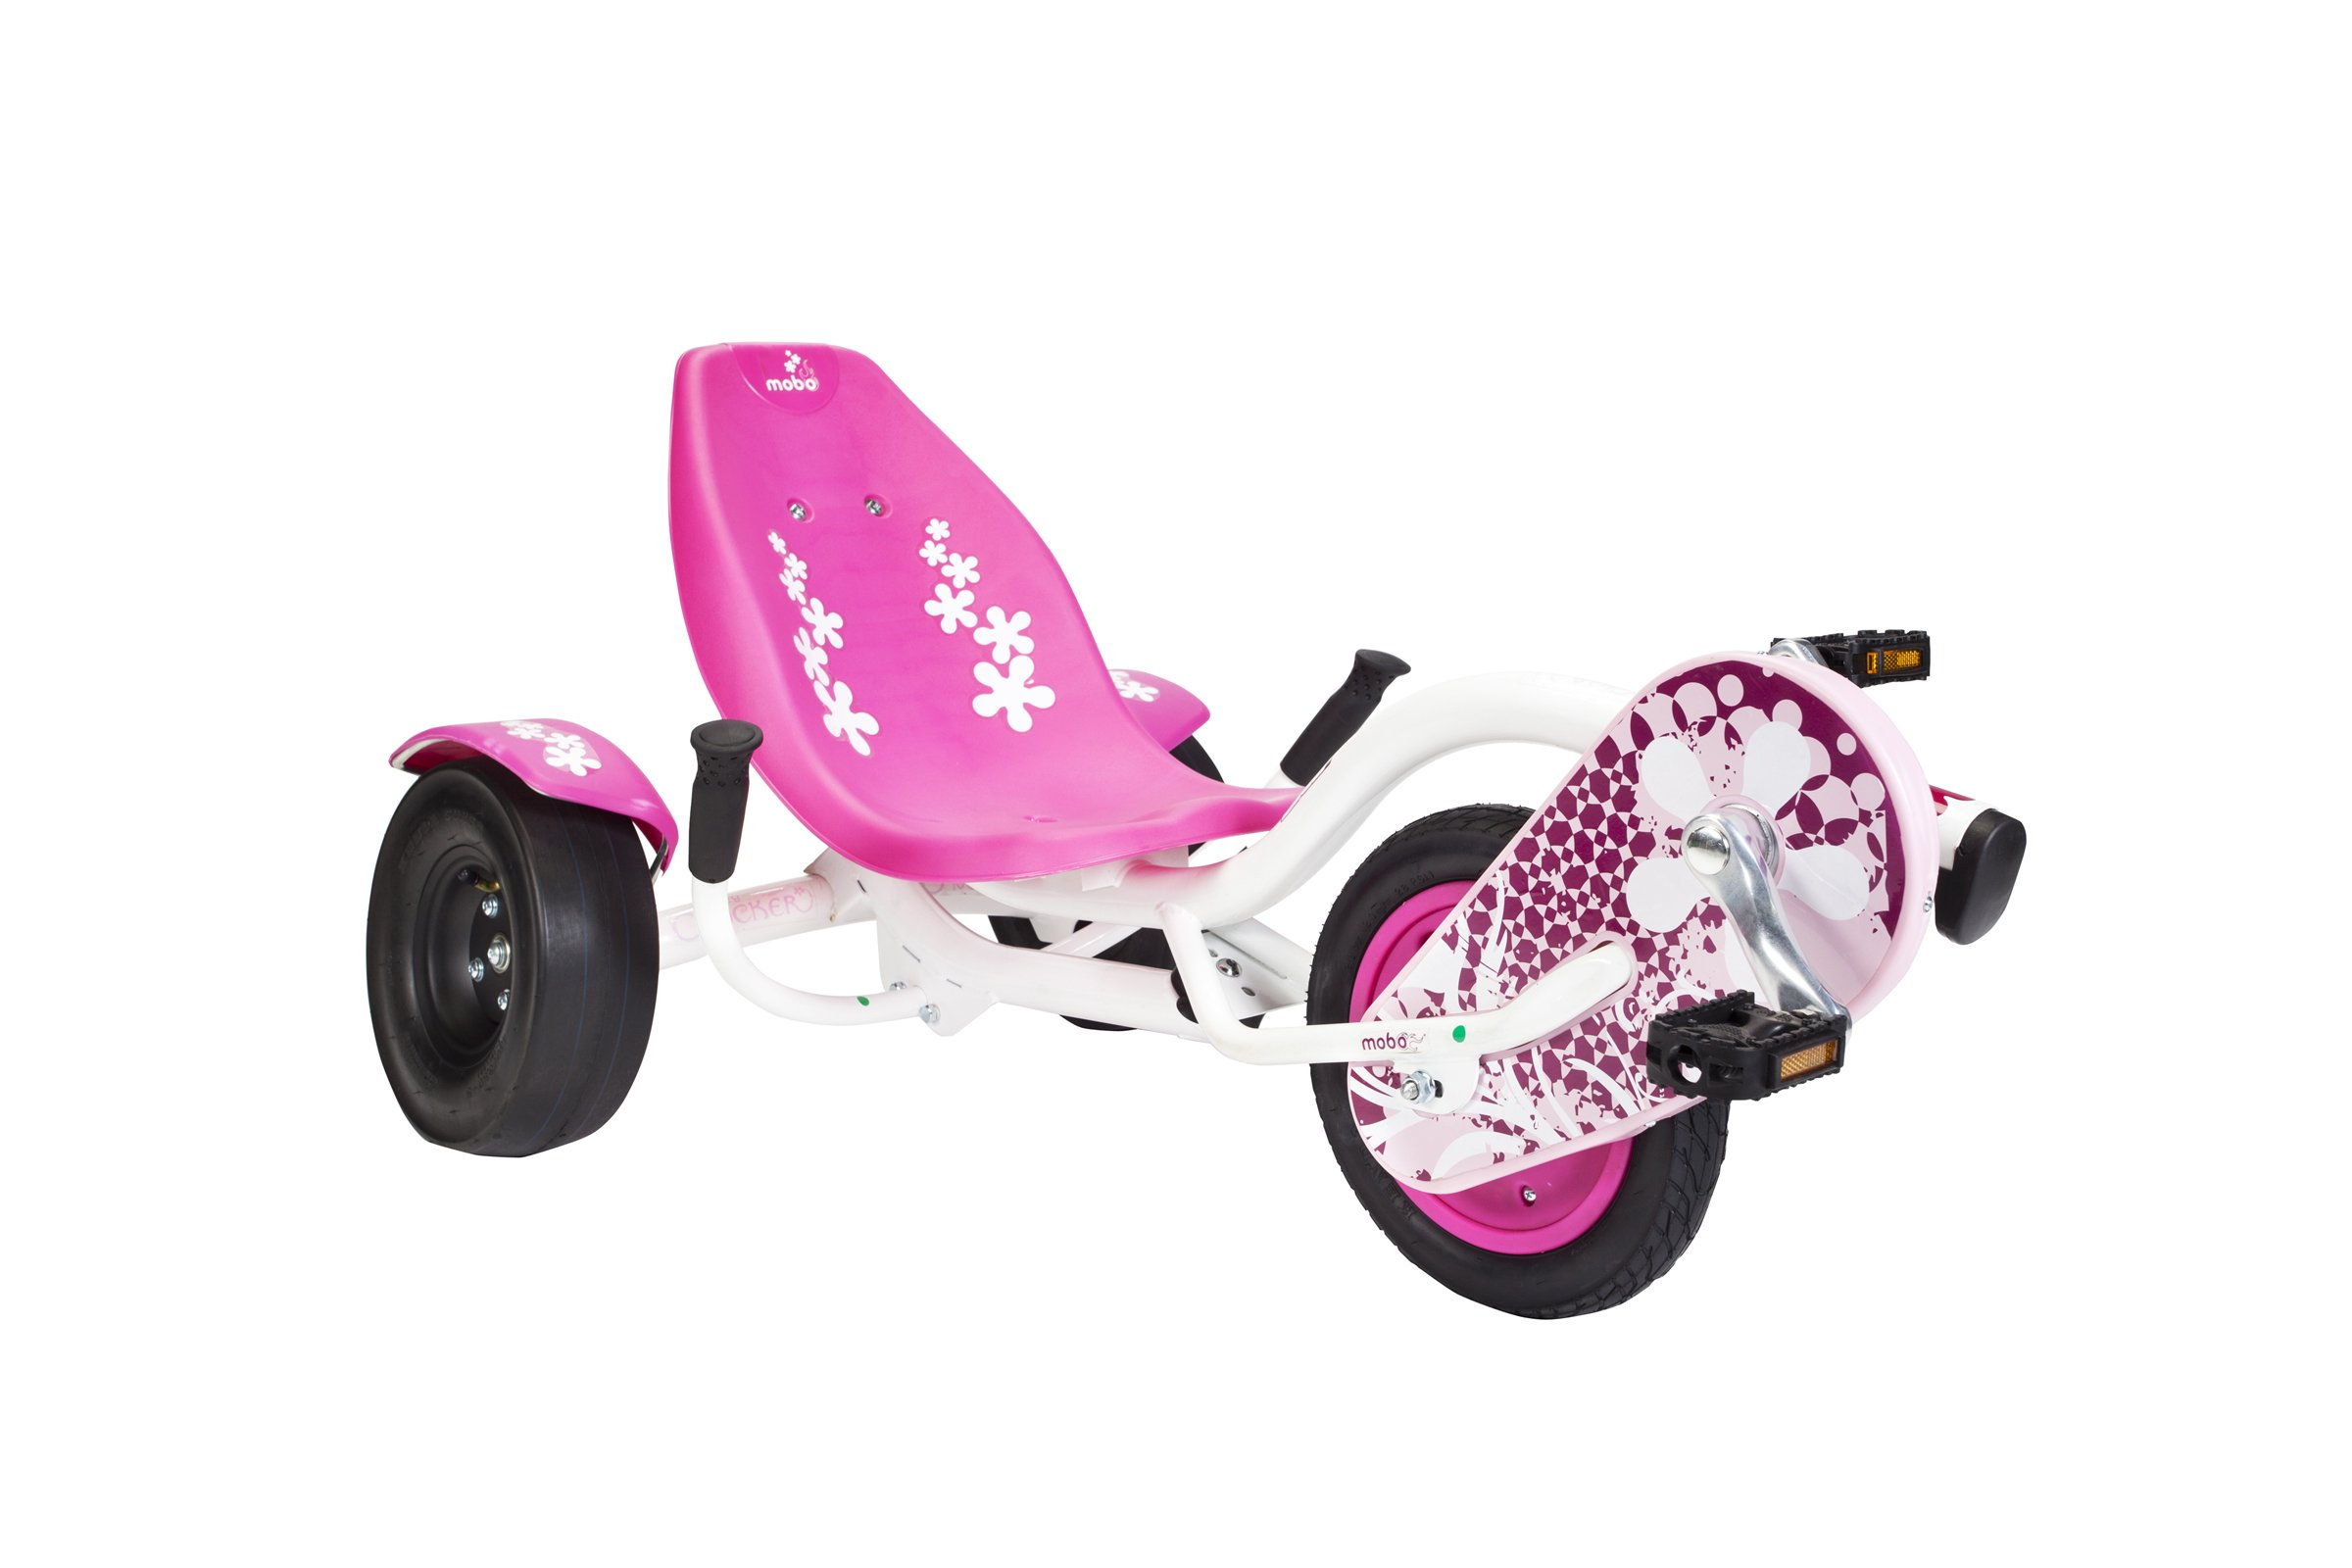 Mobo Cruiser Lady Rocker Tricycle, Pink